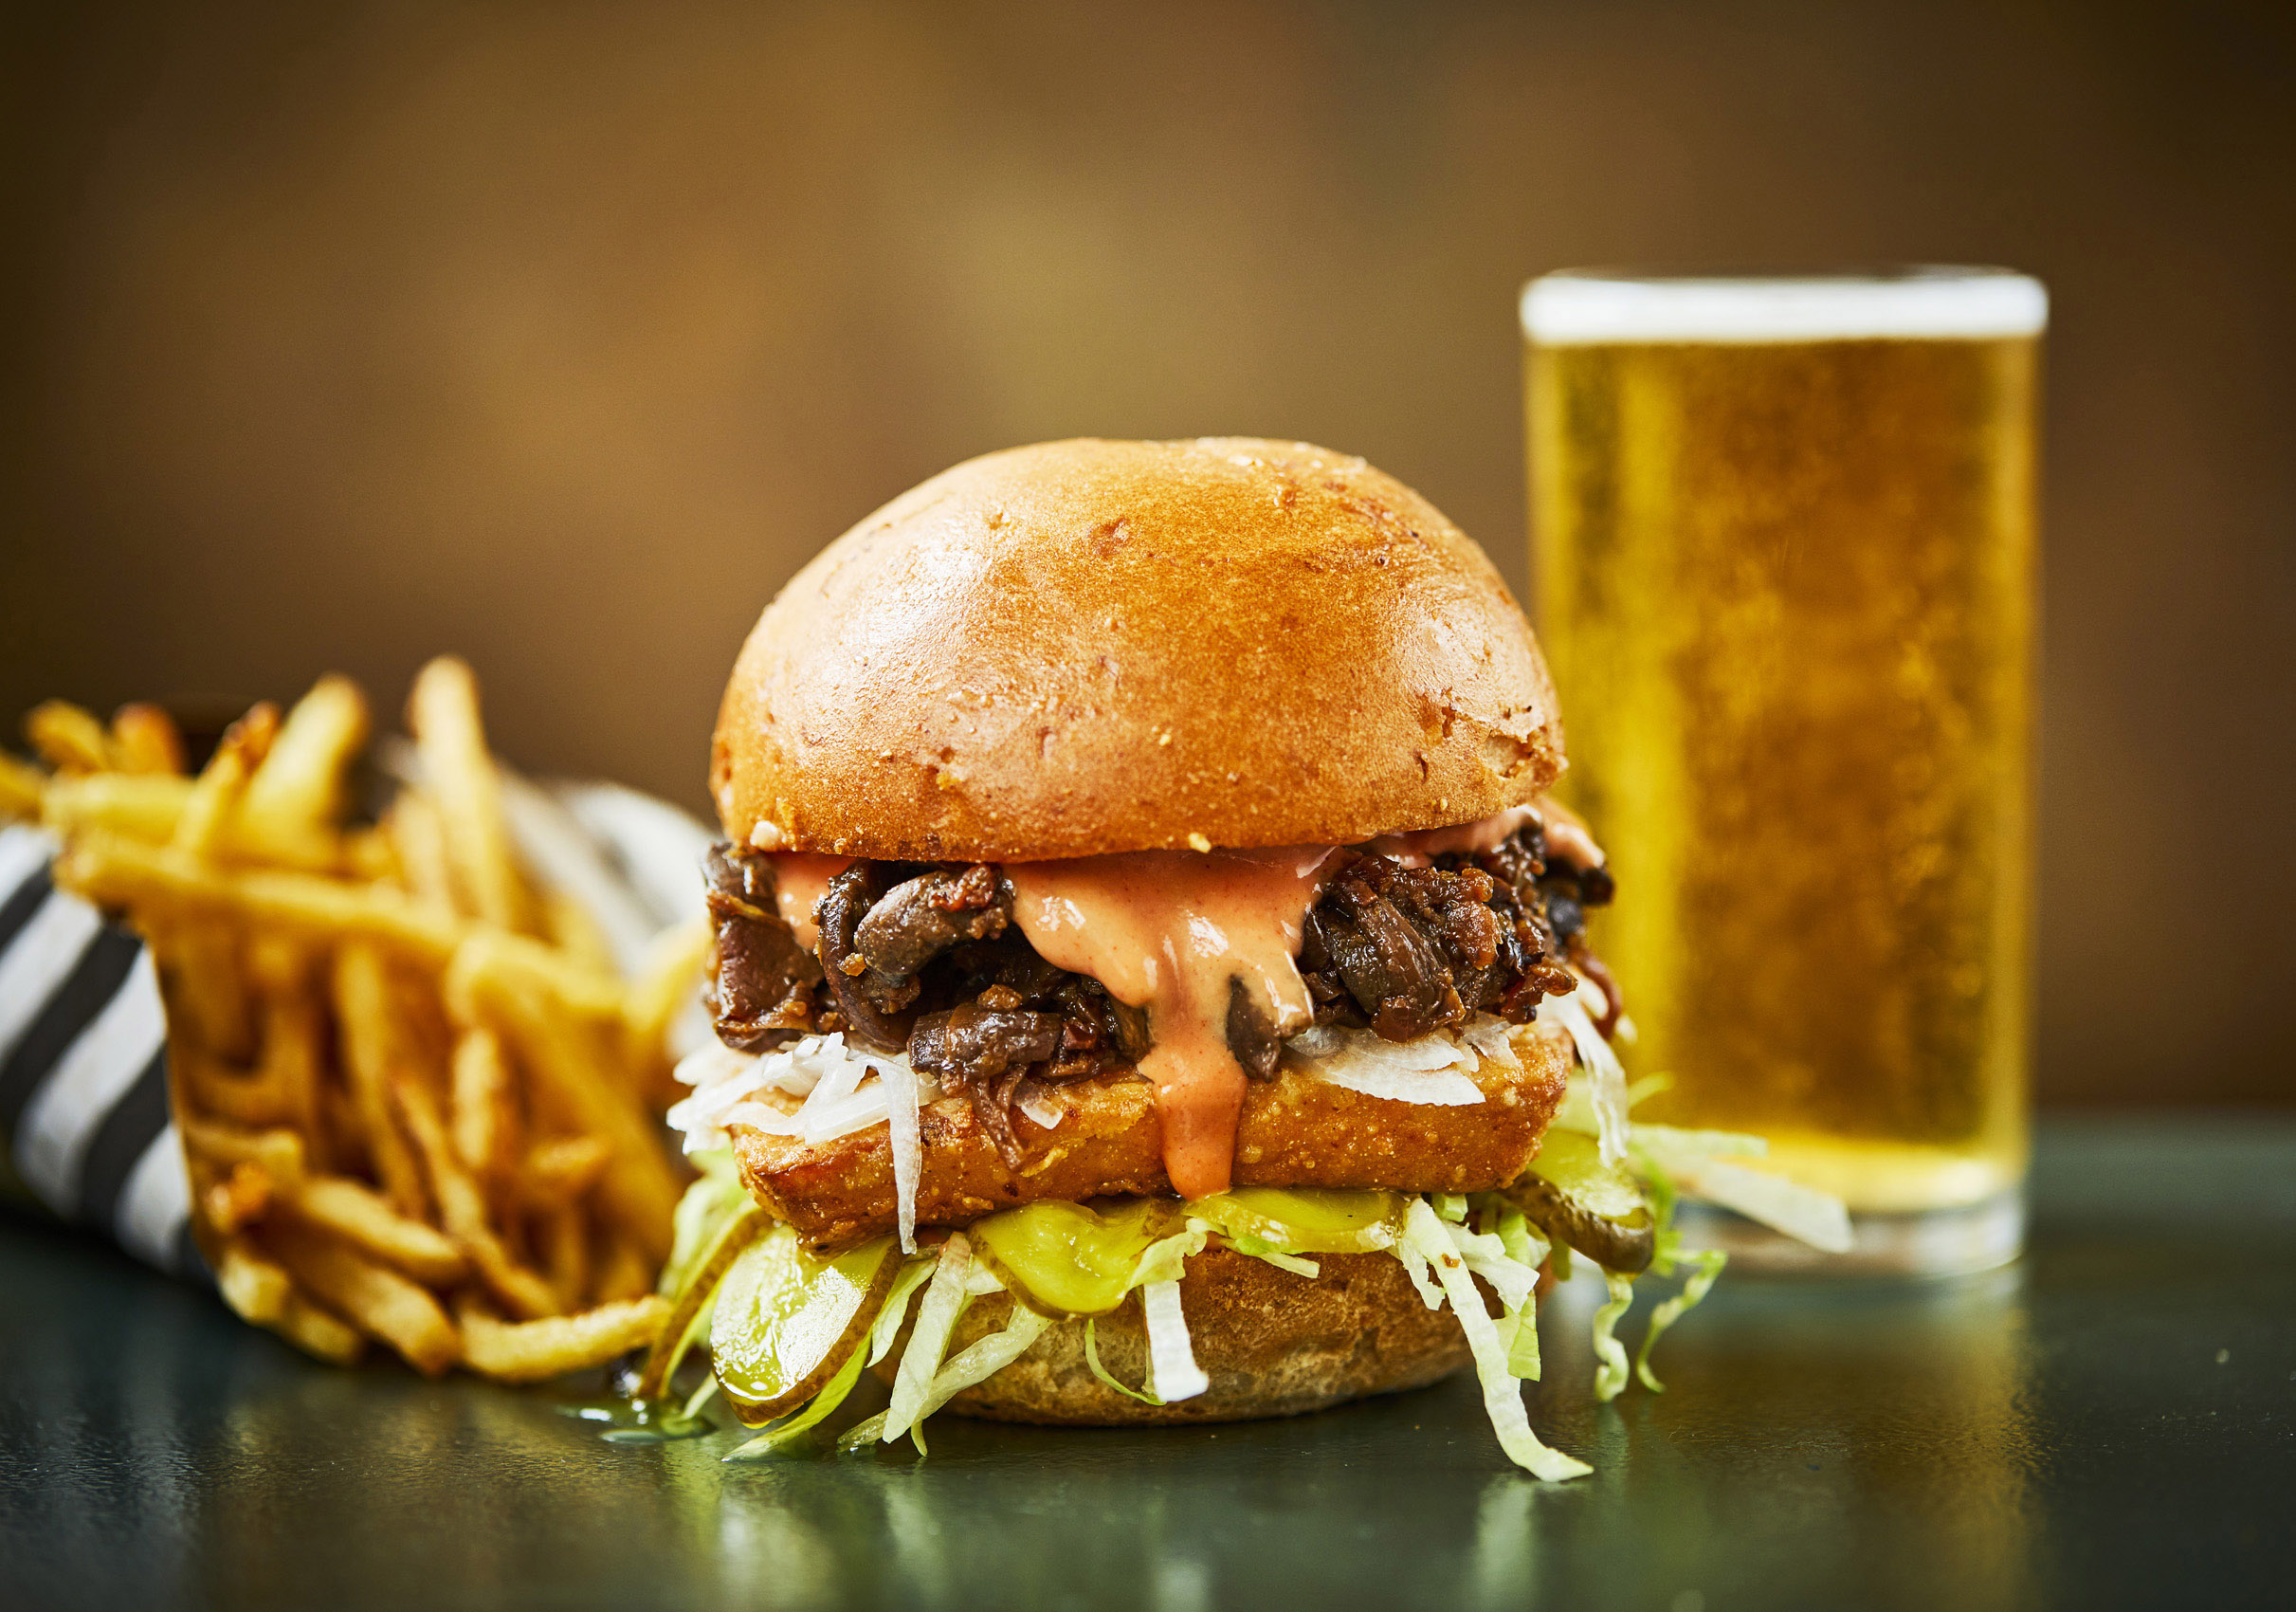 SteveRyan_Photographer_Food_Burger120